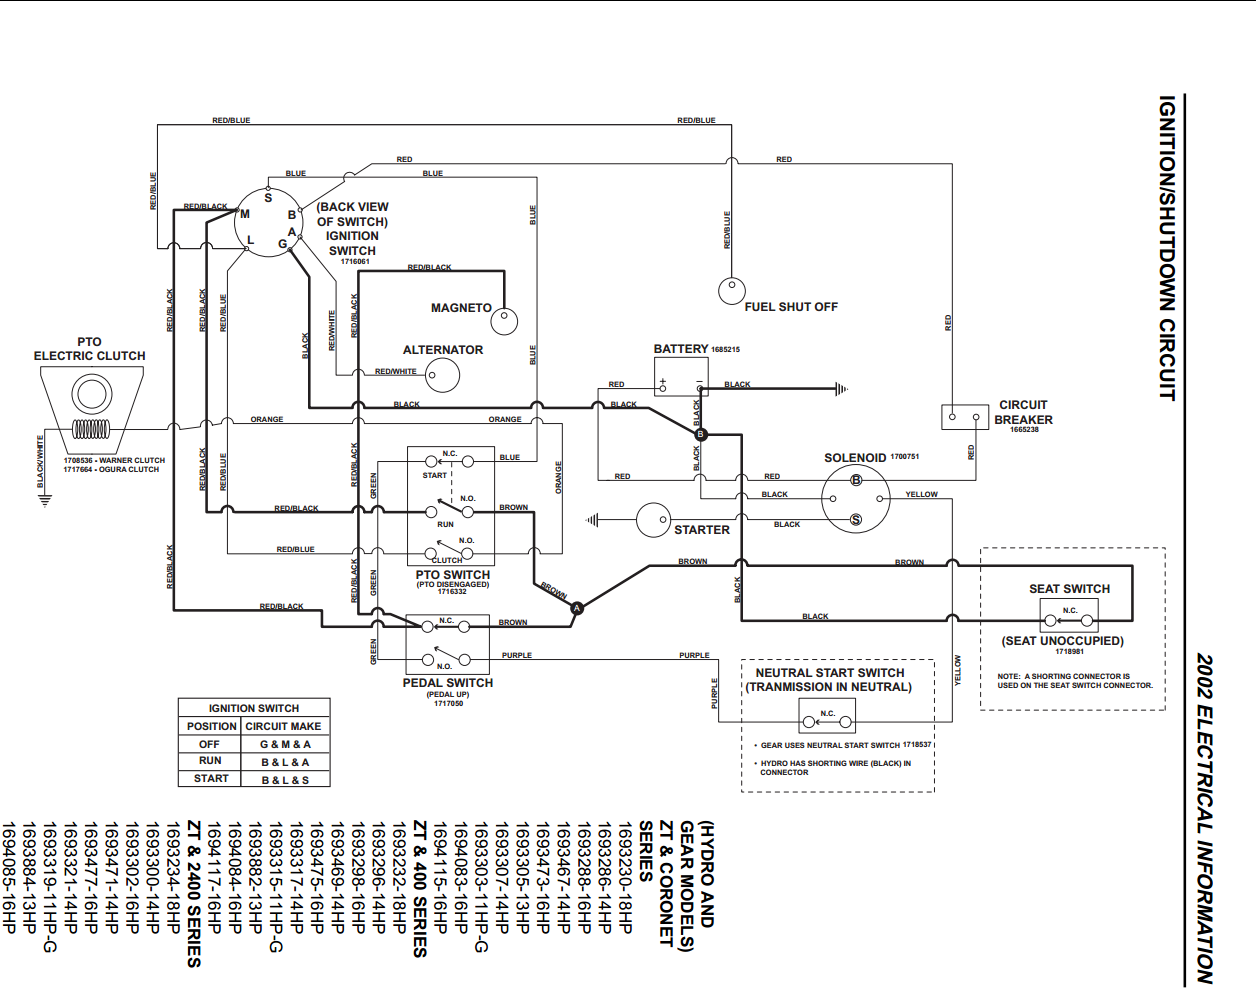 Kohler Cv15S Wiring Diagram from schematron.org